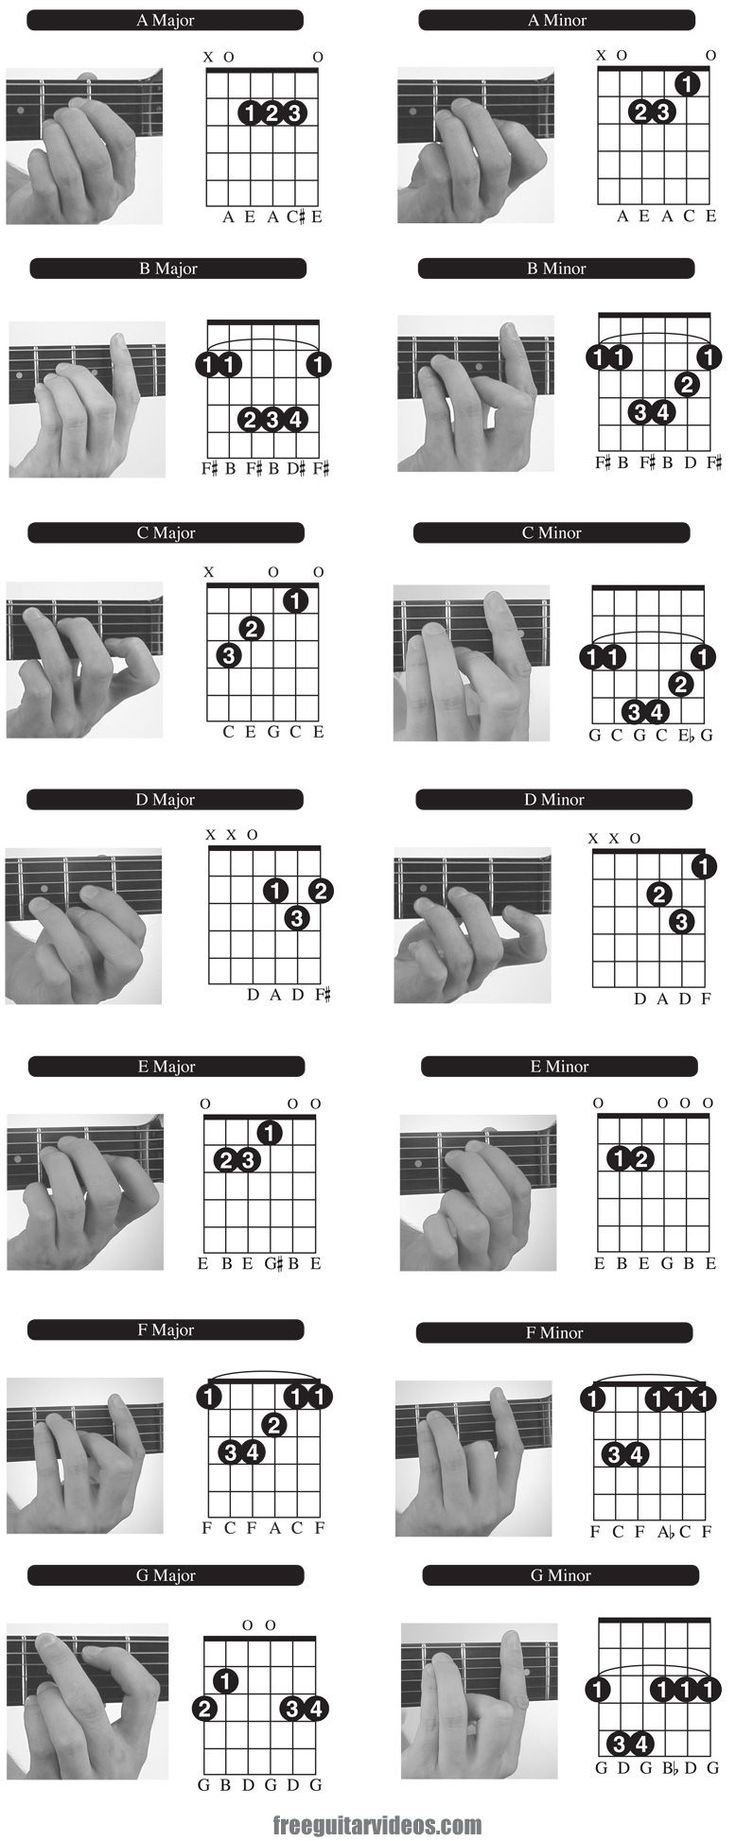 Freeguitarvideos.com shares some great guitar chords for beginners! http://www.freeguitarvideos.com/Beginner/guitar-chords.html